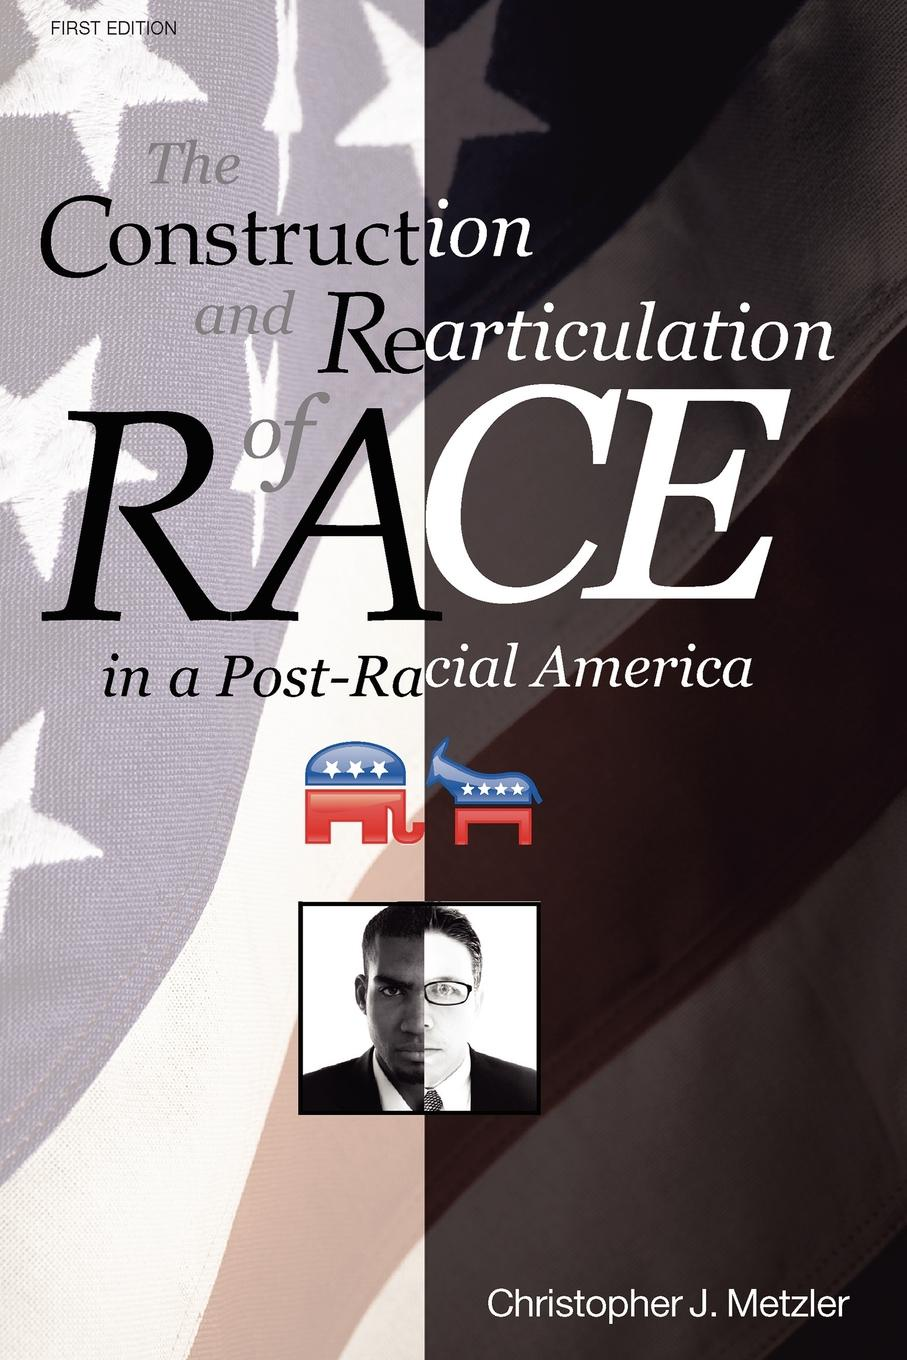 Christoper J. Metzler THE CONSTRUCTION AND REARTICULATION OF RACE IN A POST-RACIAL AMERICA